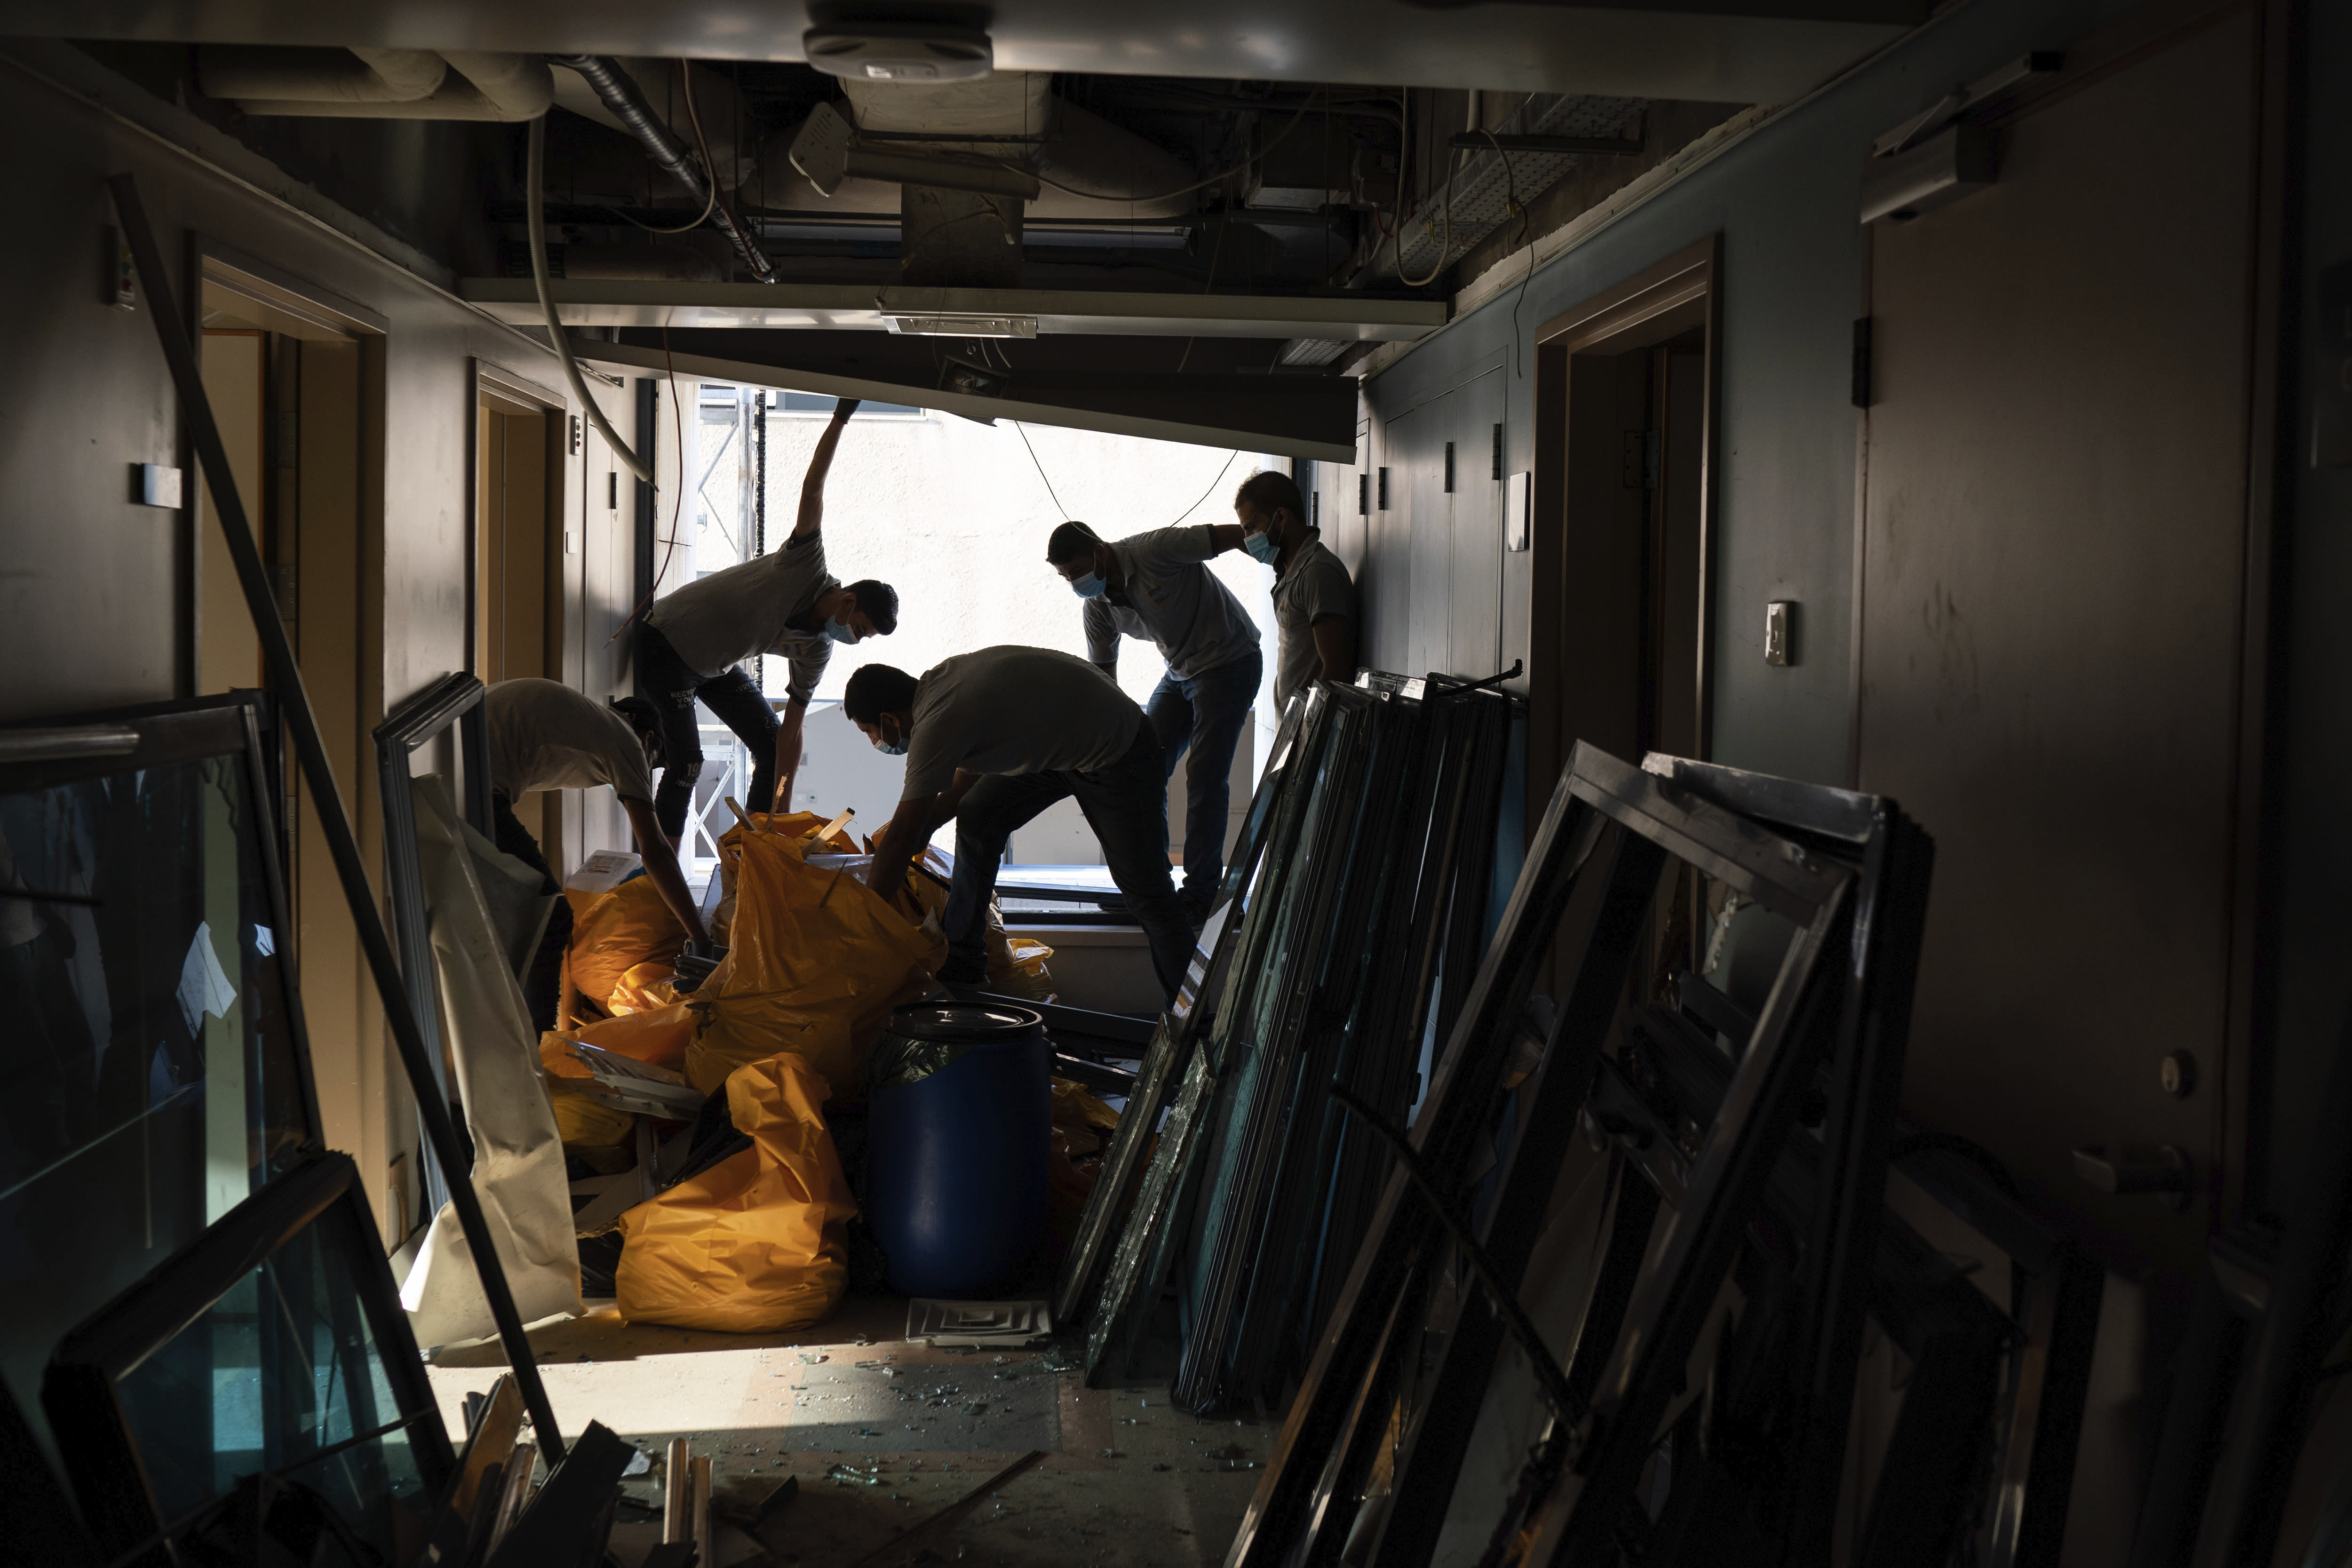 FILE - In this August 13, 2020 file photo, workers remove debris from the Saint George Hospital, that was heavily damaged in the Aug. 4 massive explosion in Beirut, Lebanon. Lebanon's health services and facilities were once considered among the region's best. But in a short time, they have been brought to near collapse, battered by Lebanon's financial meltdown and a surge in coronavirus cases, then smashed by the Beirut explosion. (AP Photo/Felipe Dana, File)